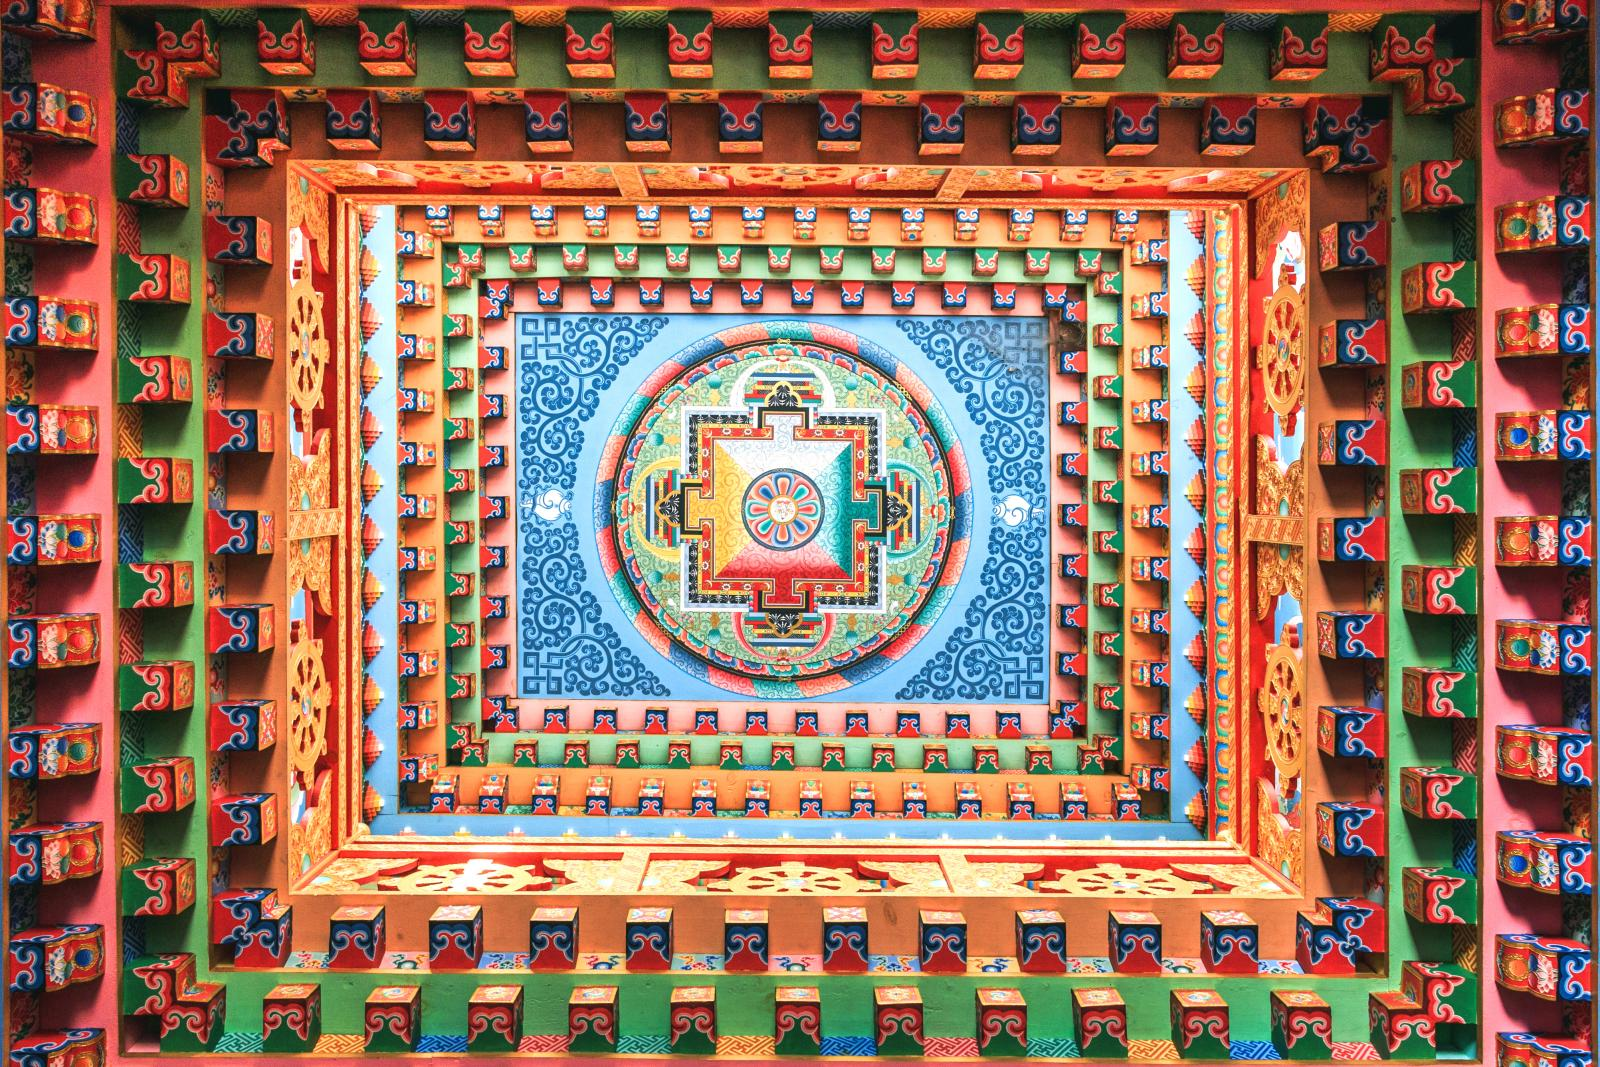 Highly decorated ceiling with mandala on the center